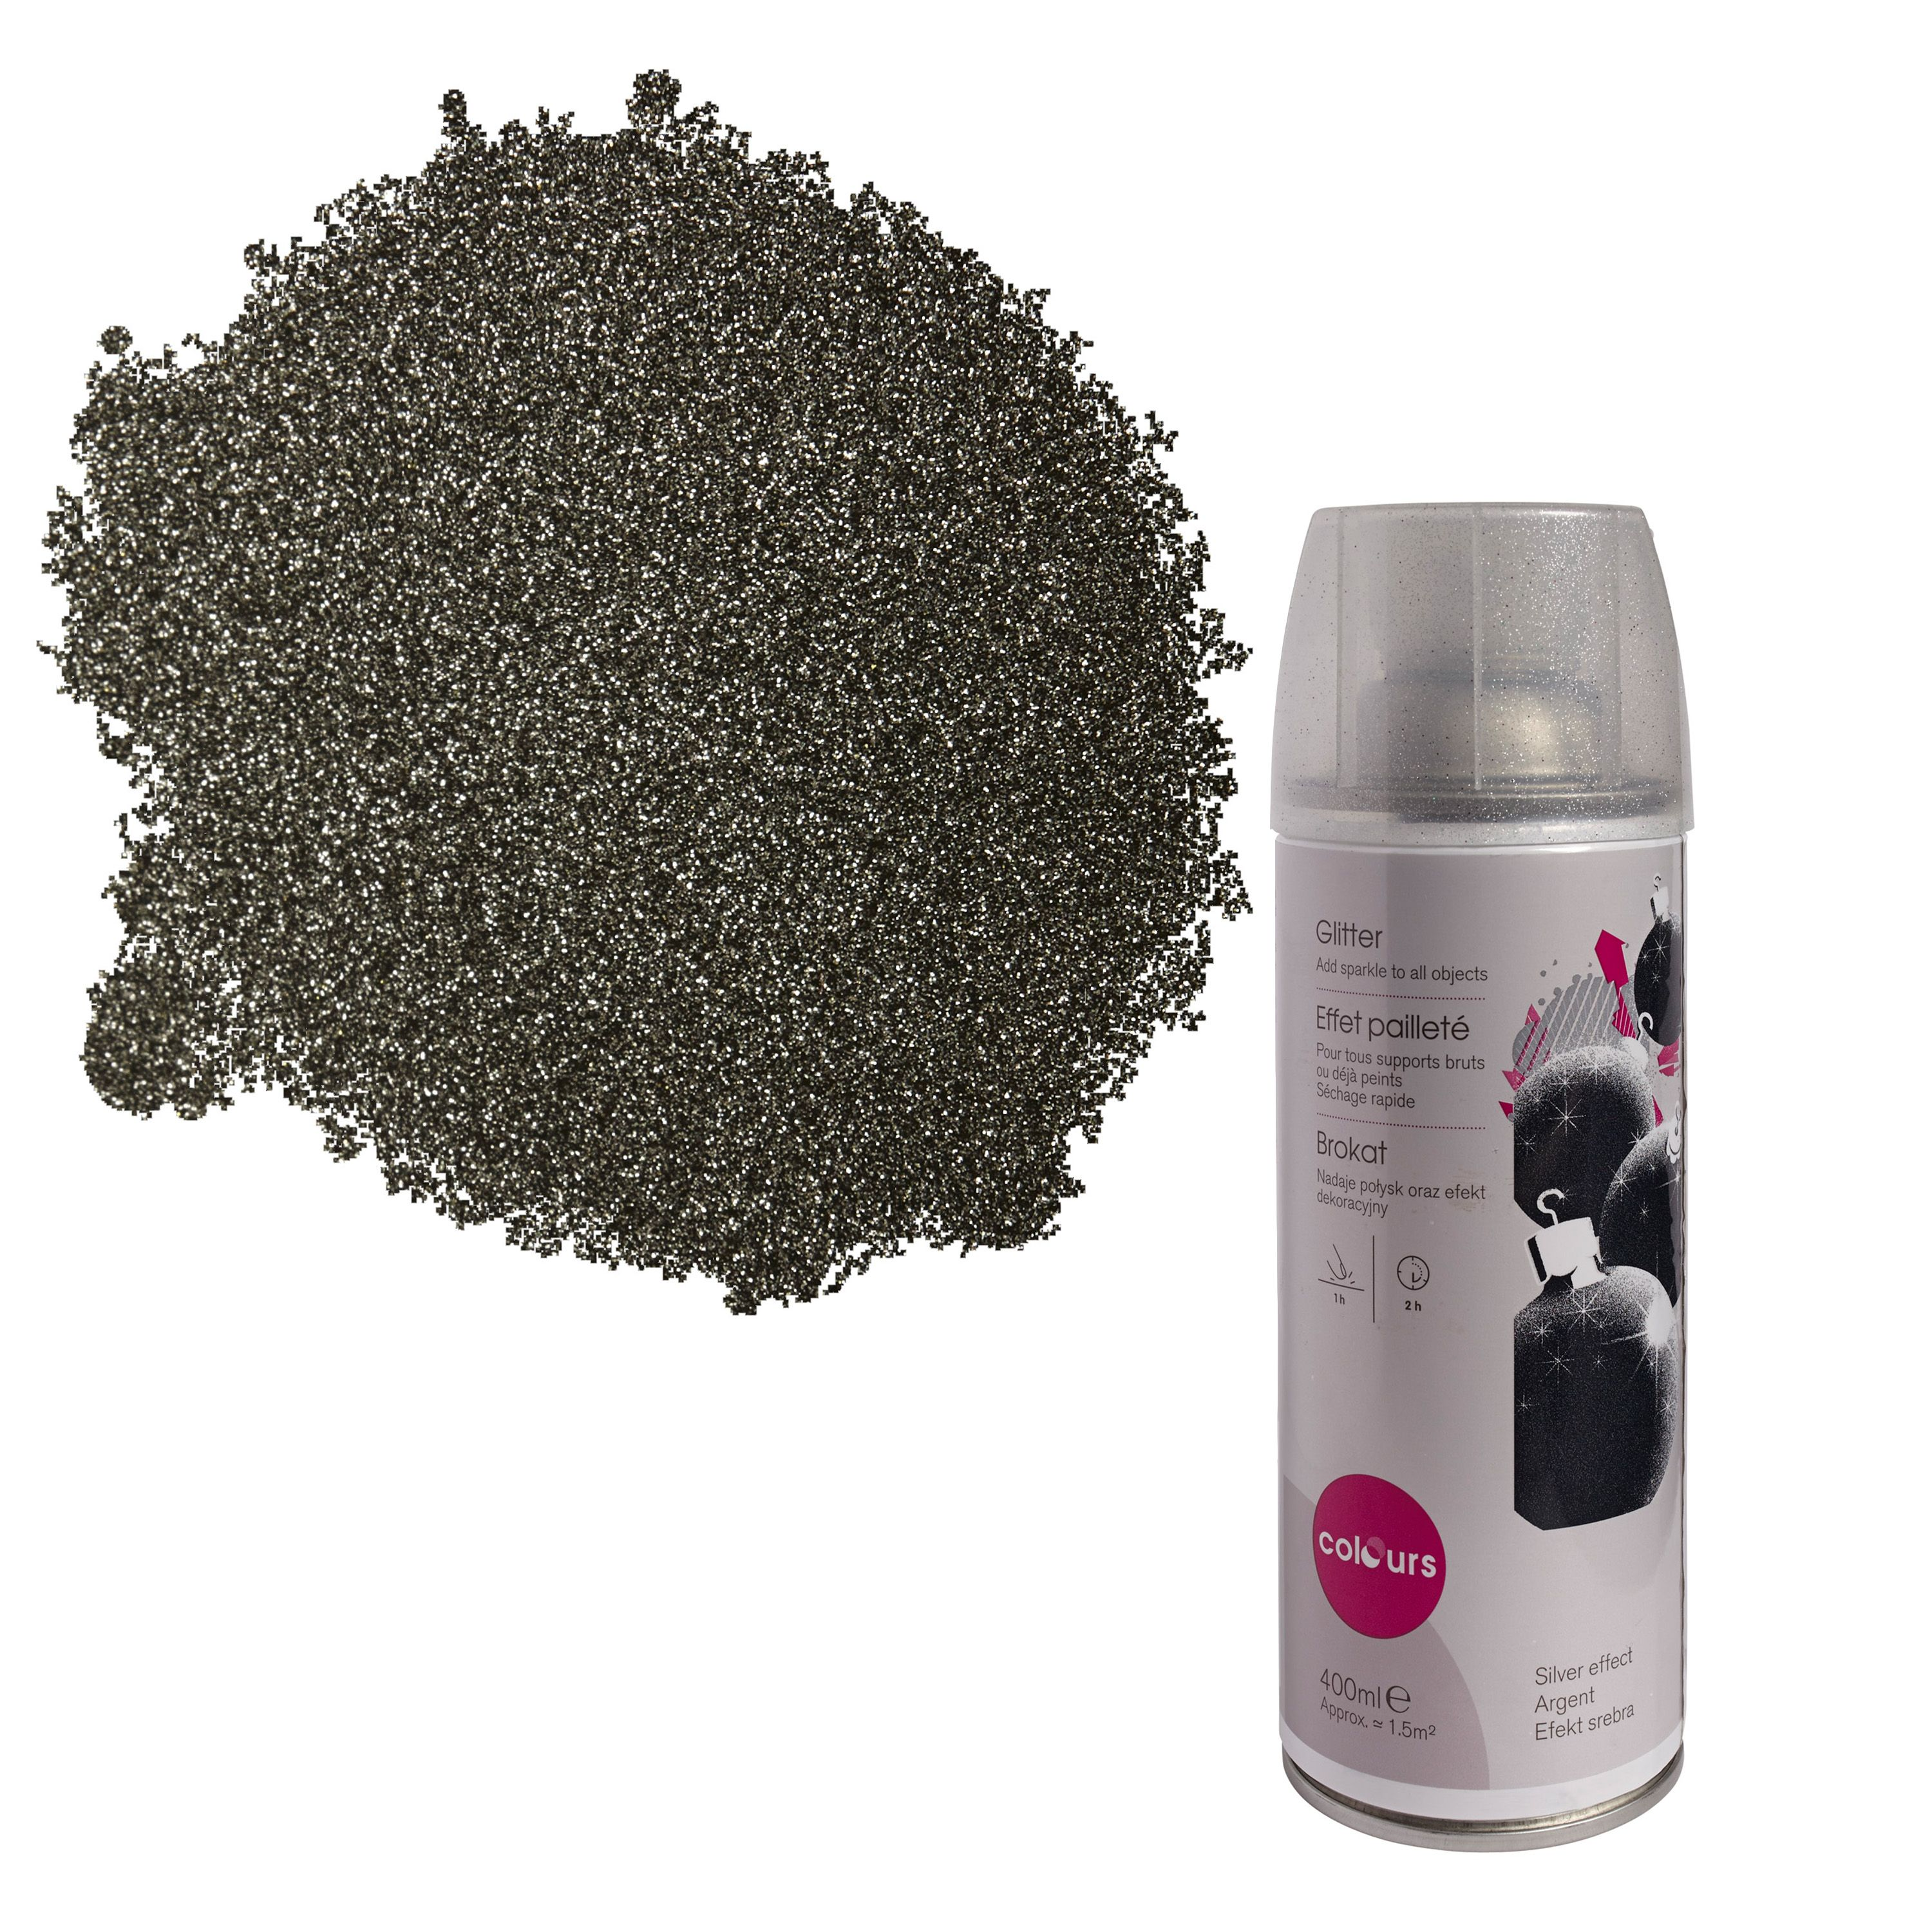 Colours Silver Glitter Effect Spray Paint 400 Ml Departments Diy At B Amp Q